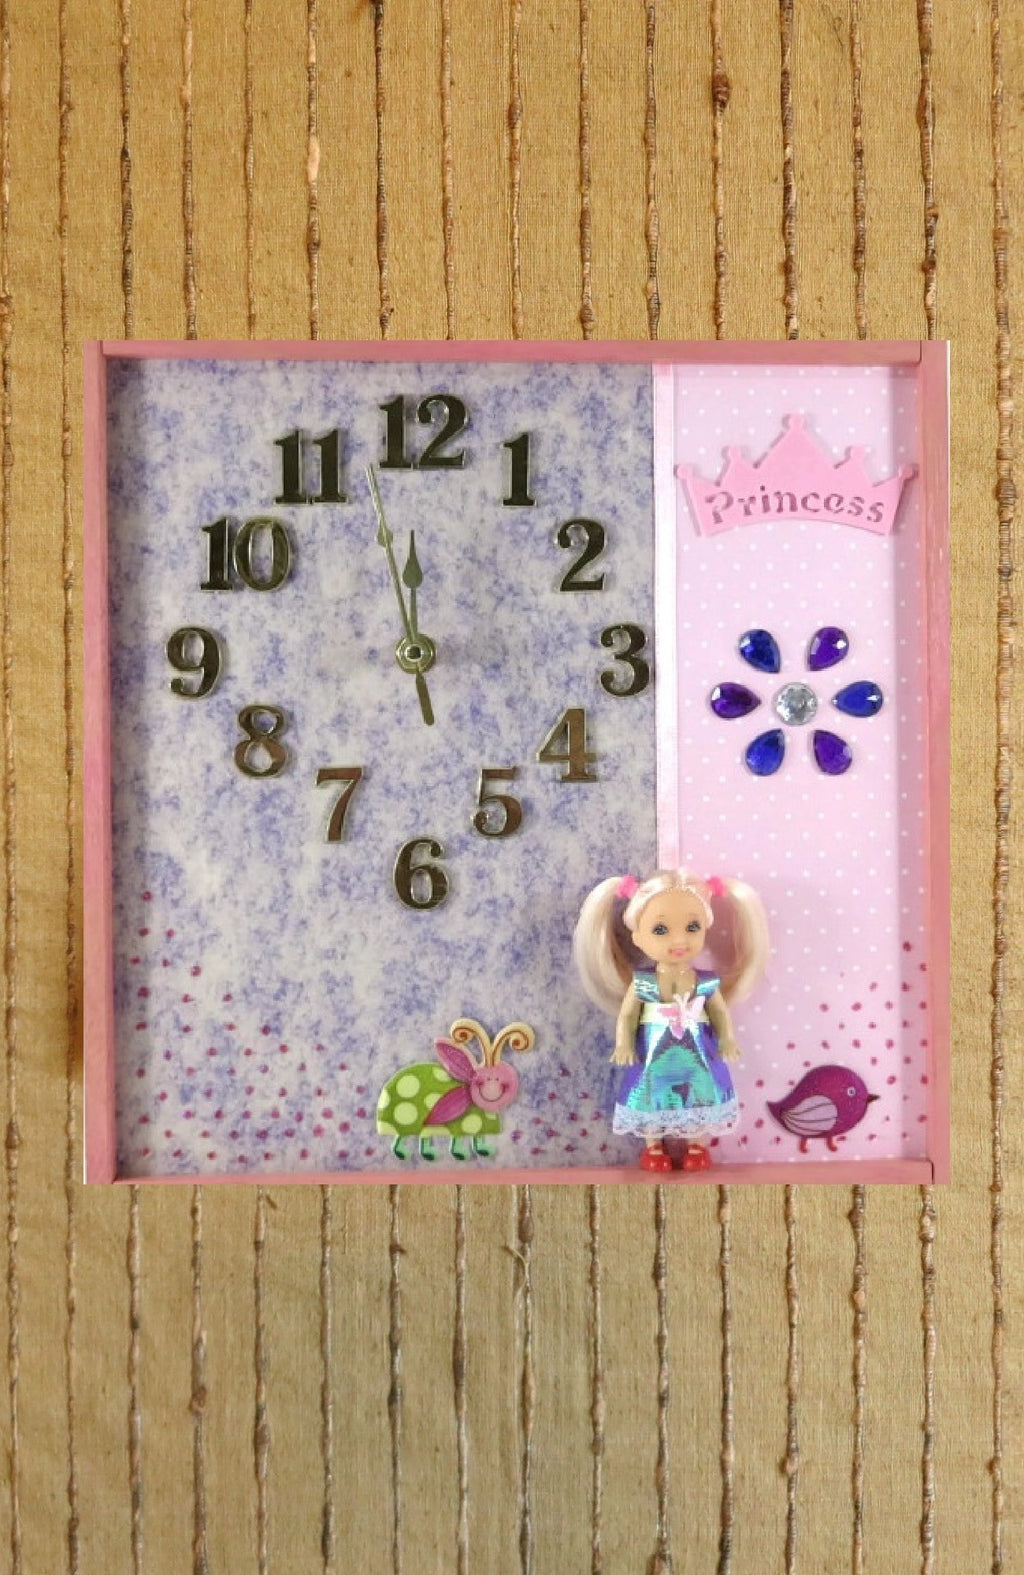 Little-Girls-Bedroom-Wall-Clock-Nchanted-Gifts